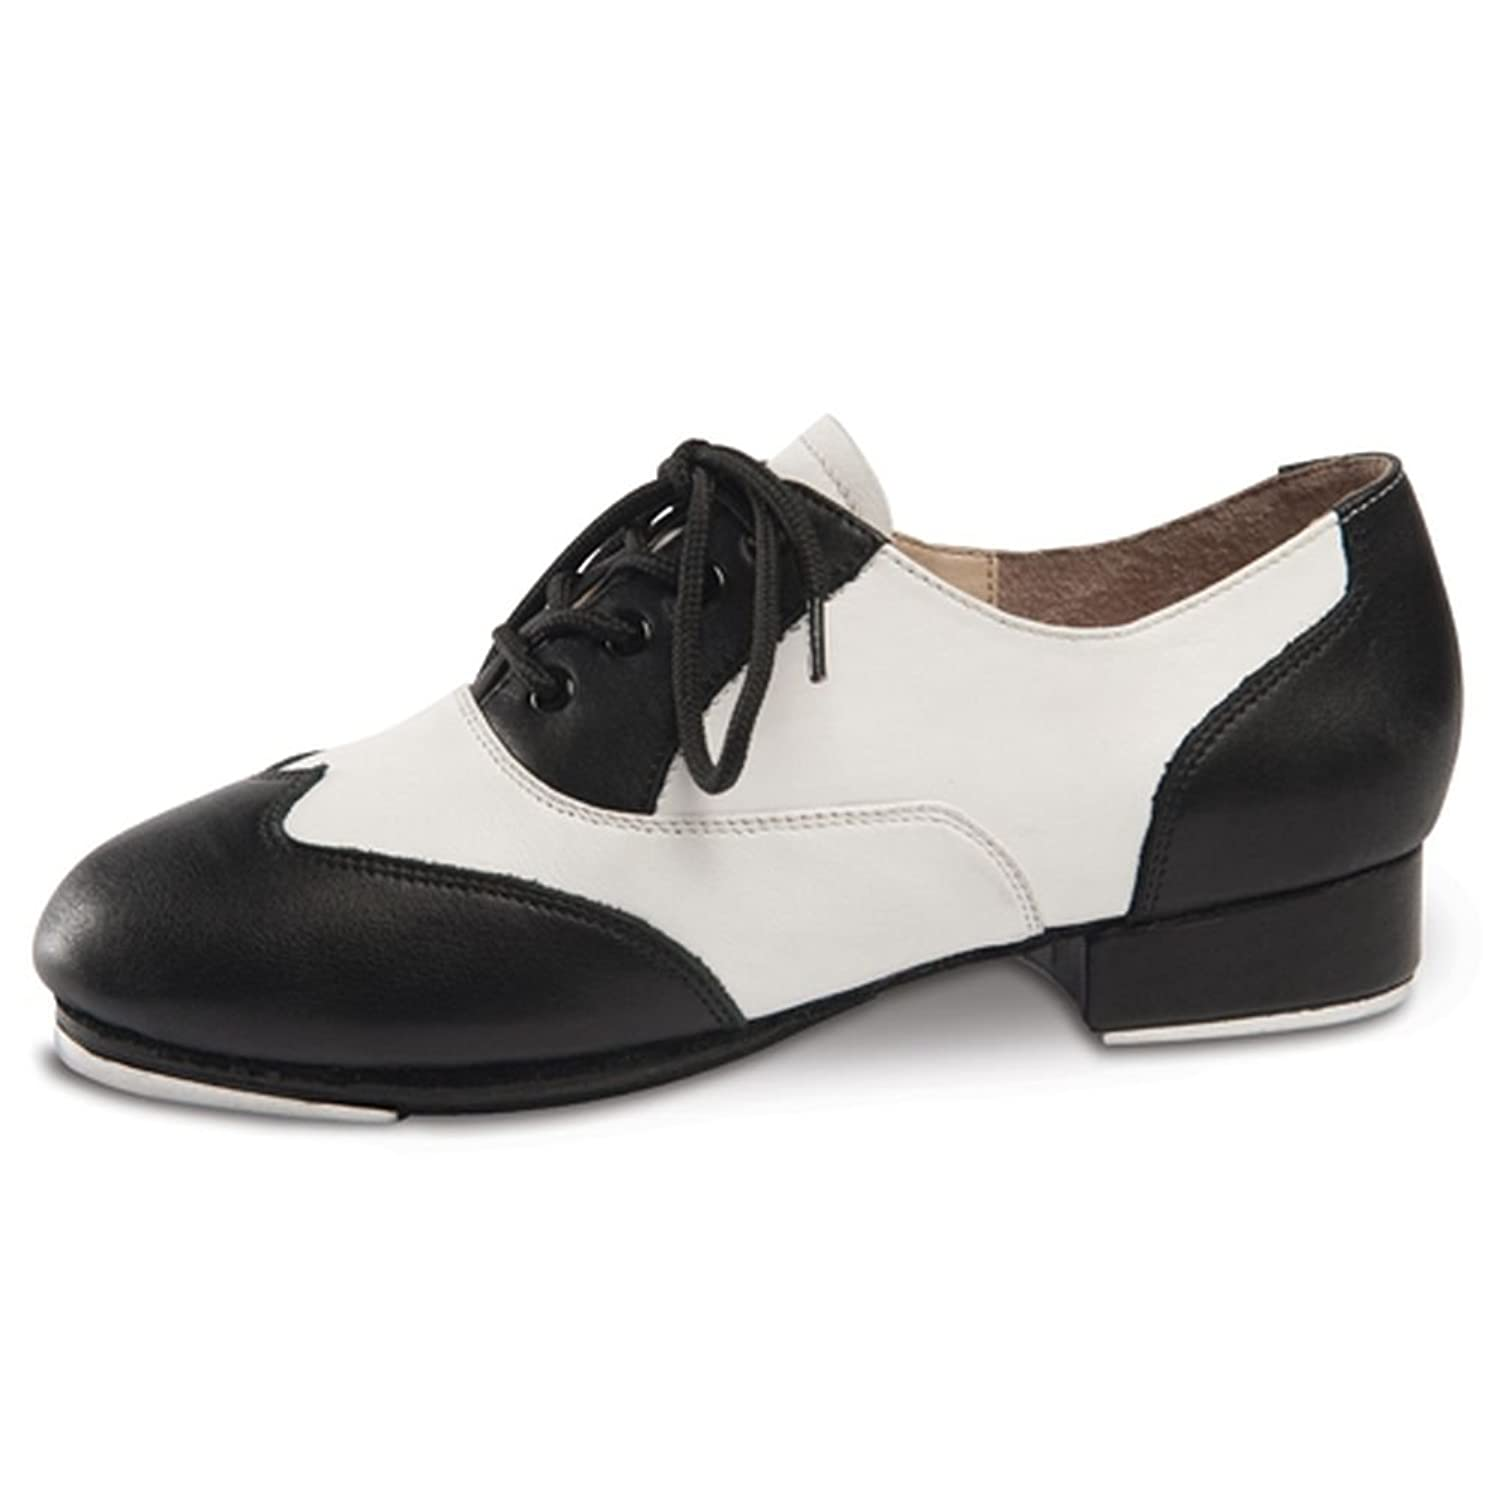 Vintage Style Shoes, Vintage Inspired Shoes Danshuz Womens Black White Saddle Style Tap Dance Shoes Size 3-11 $119.95 AT vintagedancer.com